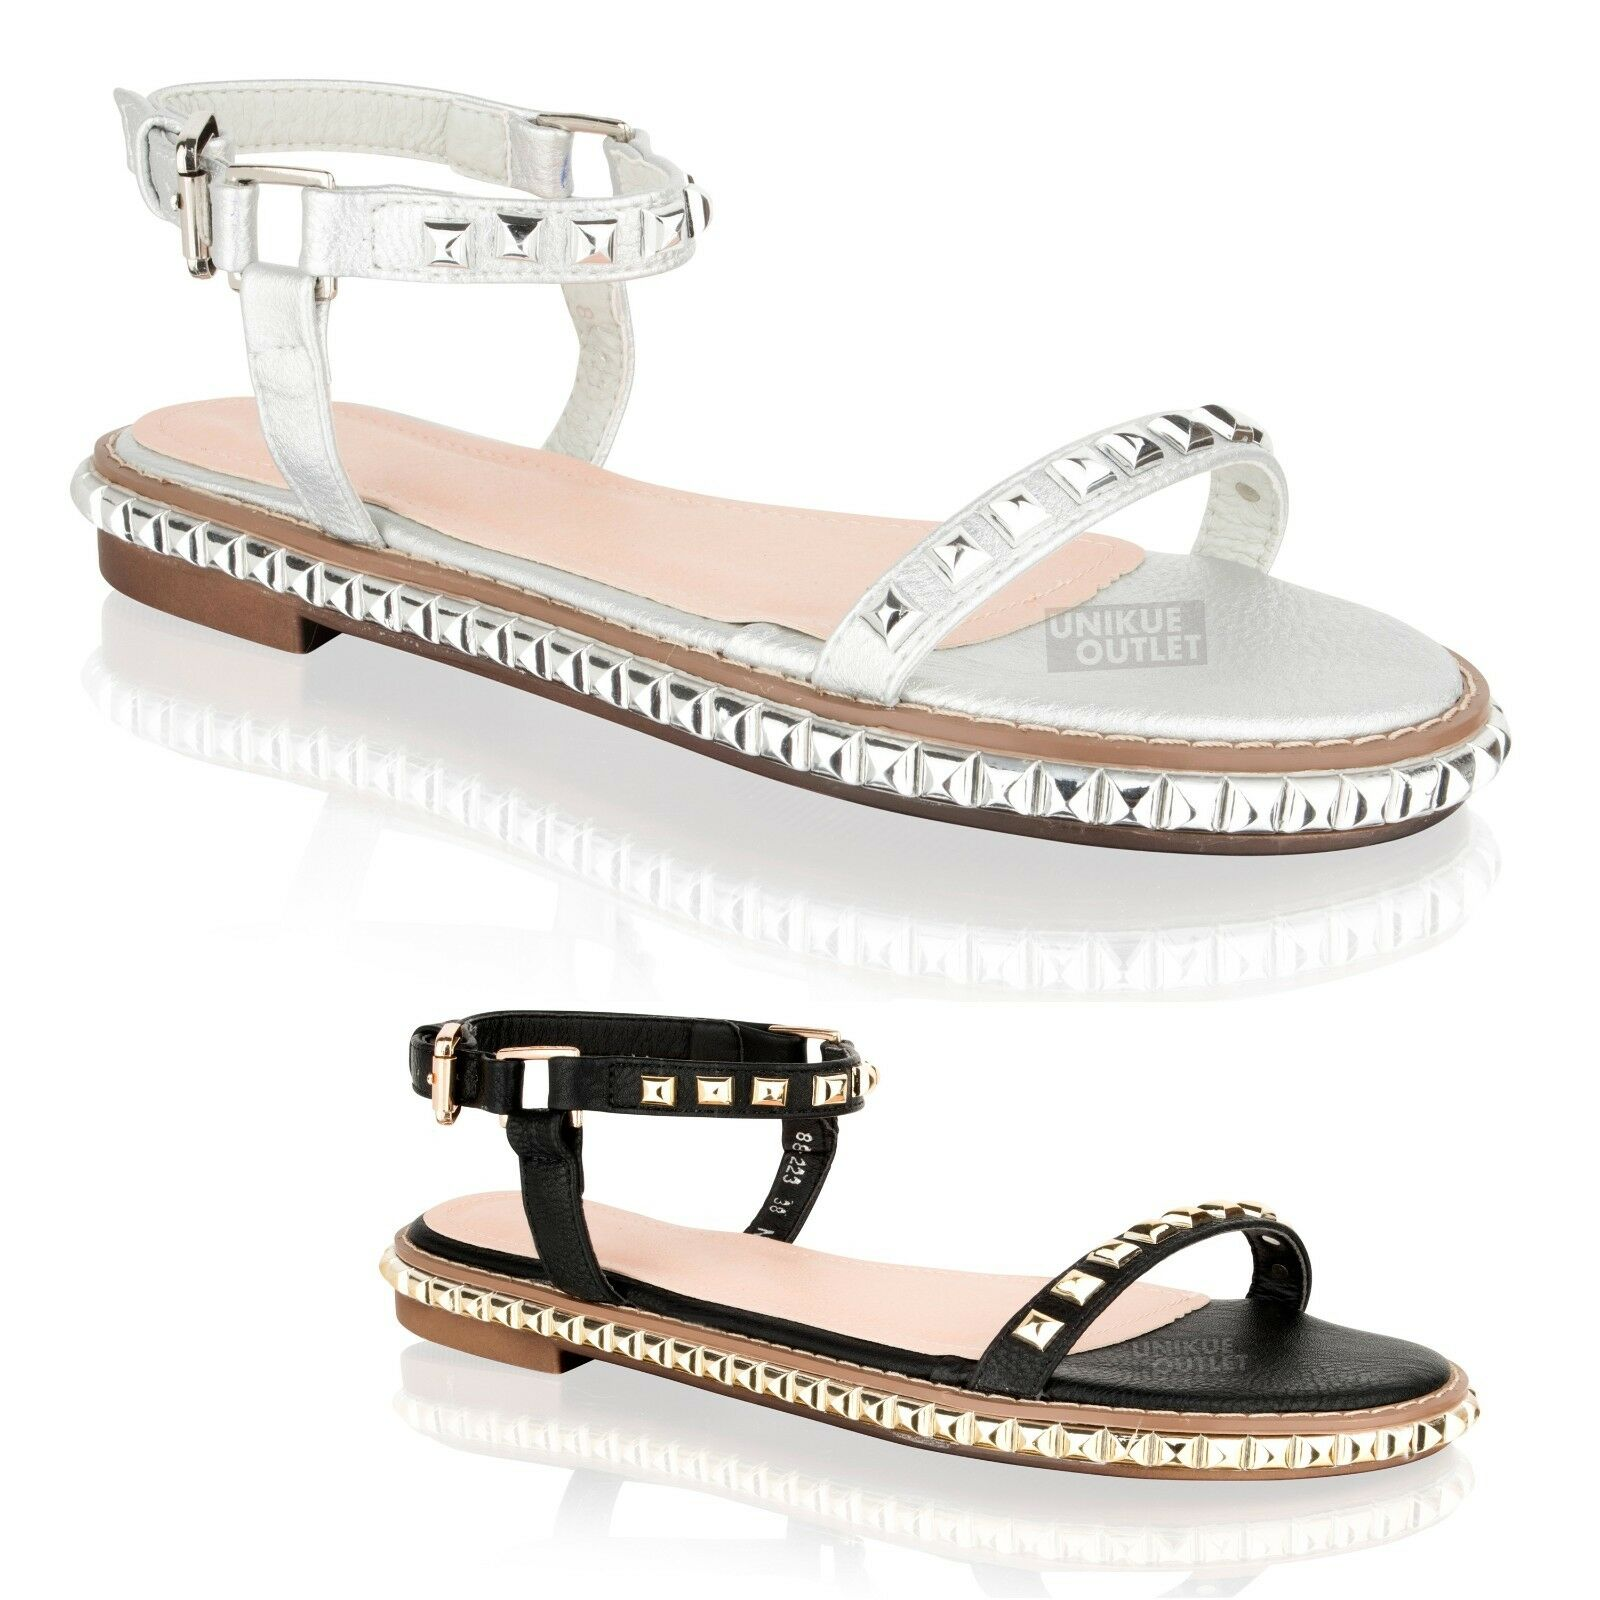 Womens Ladies Flat Studded Strappy Sandals Ankle Strap Holiday Summer Sandals Strappy Shoes Size c1c8cb